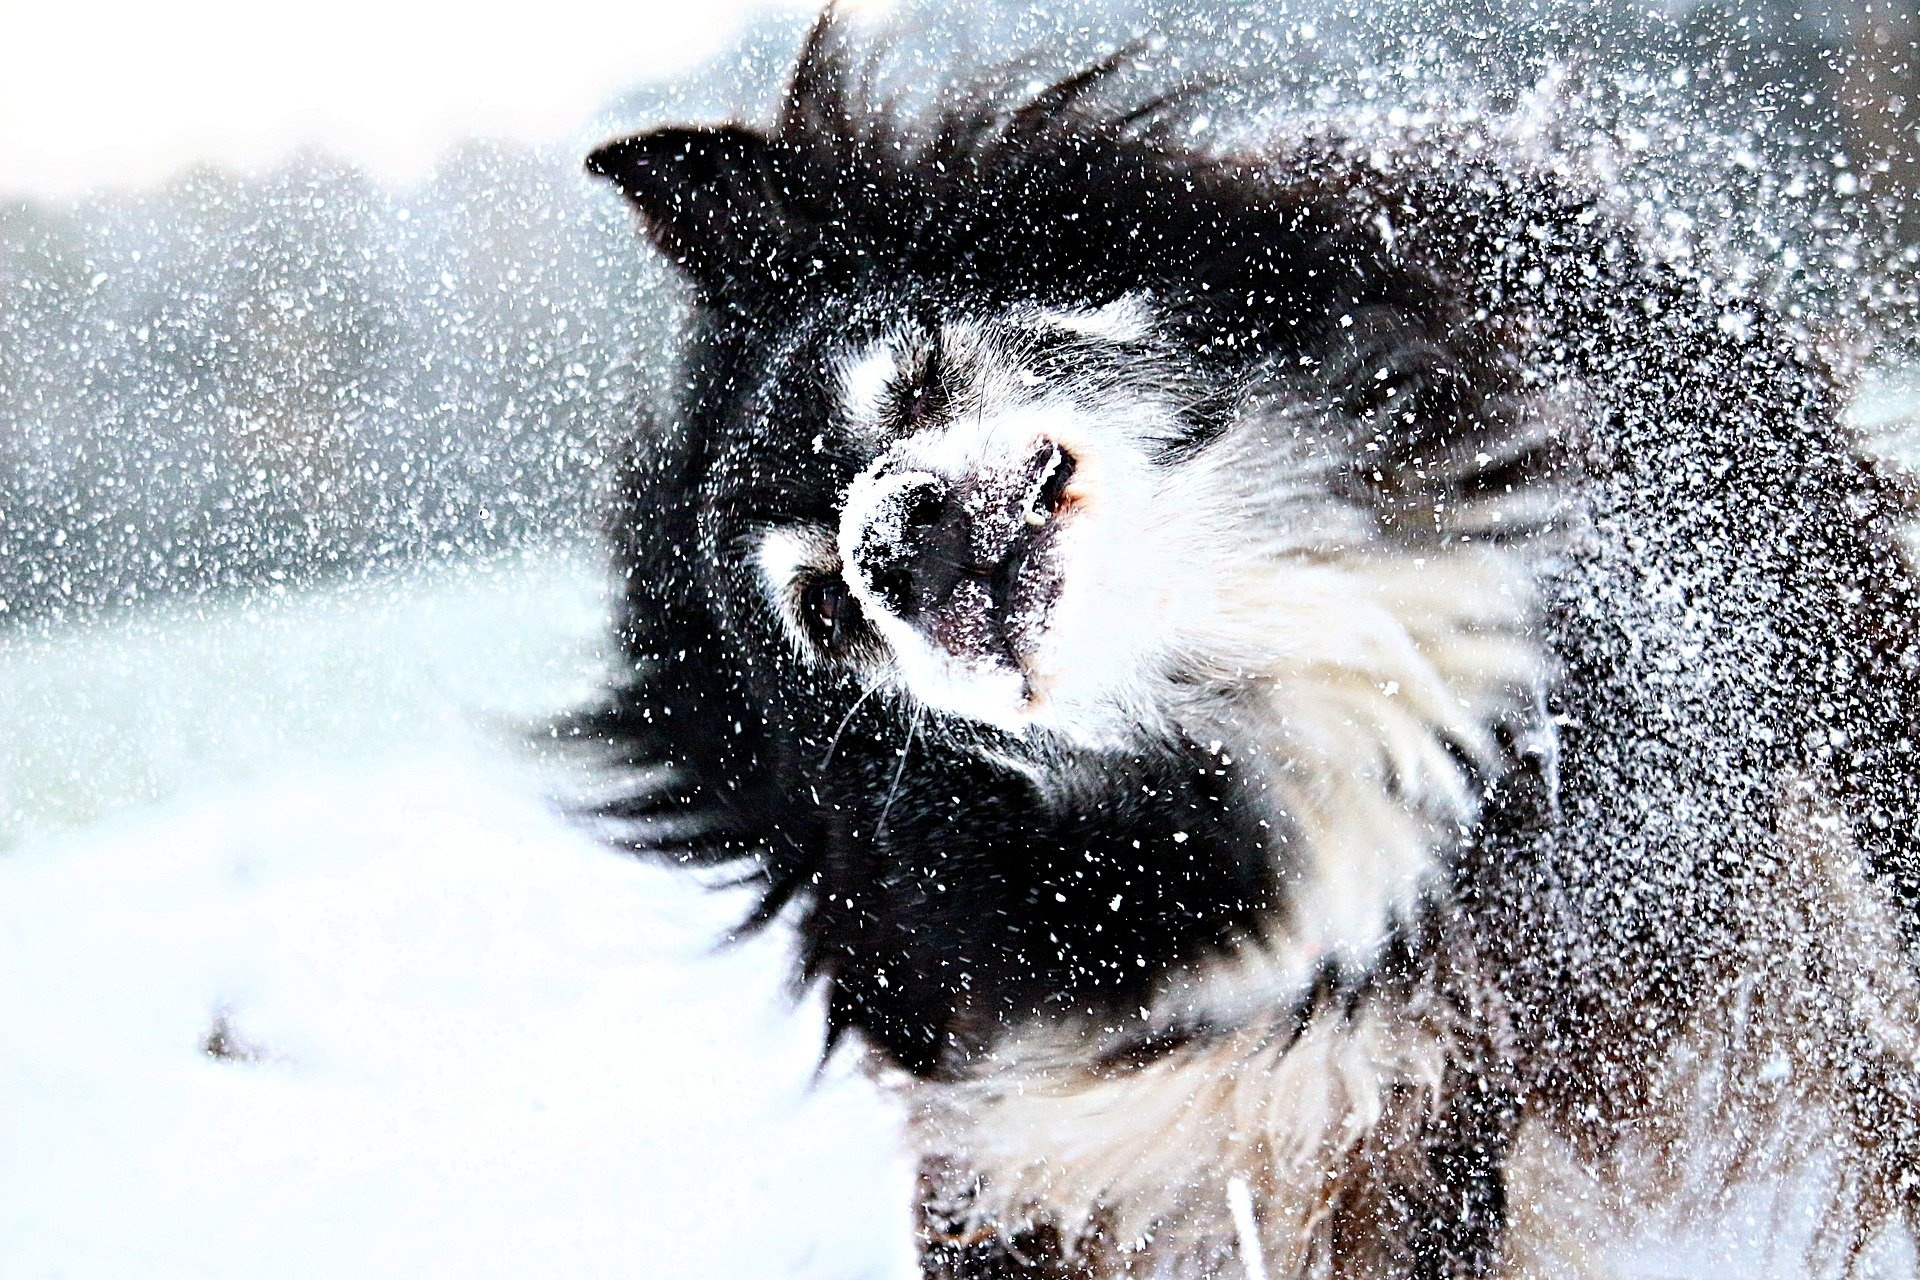 Dog shaking snow